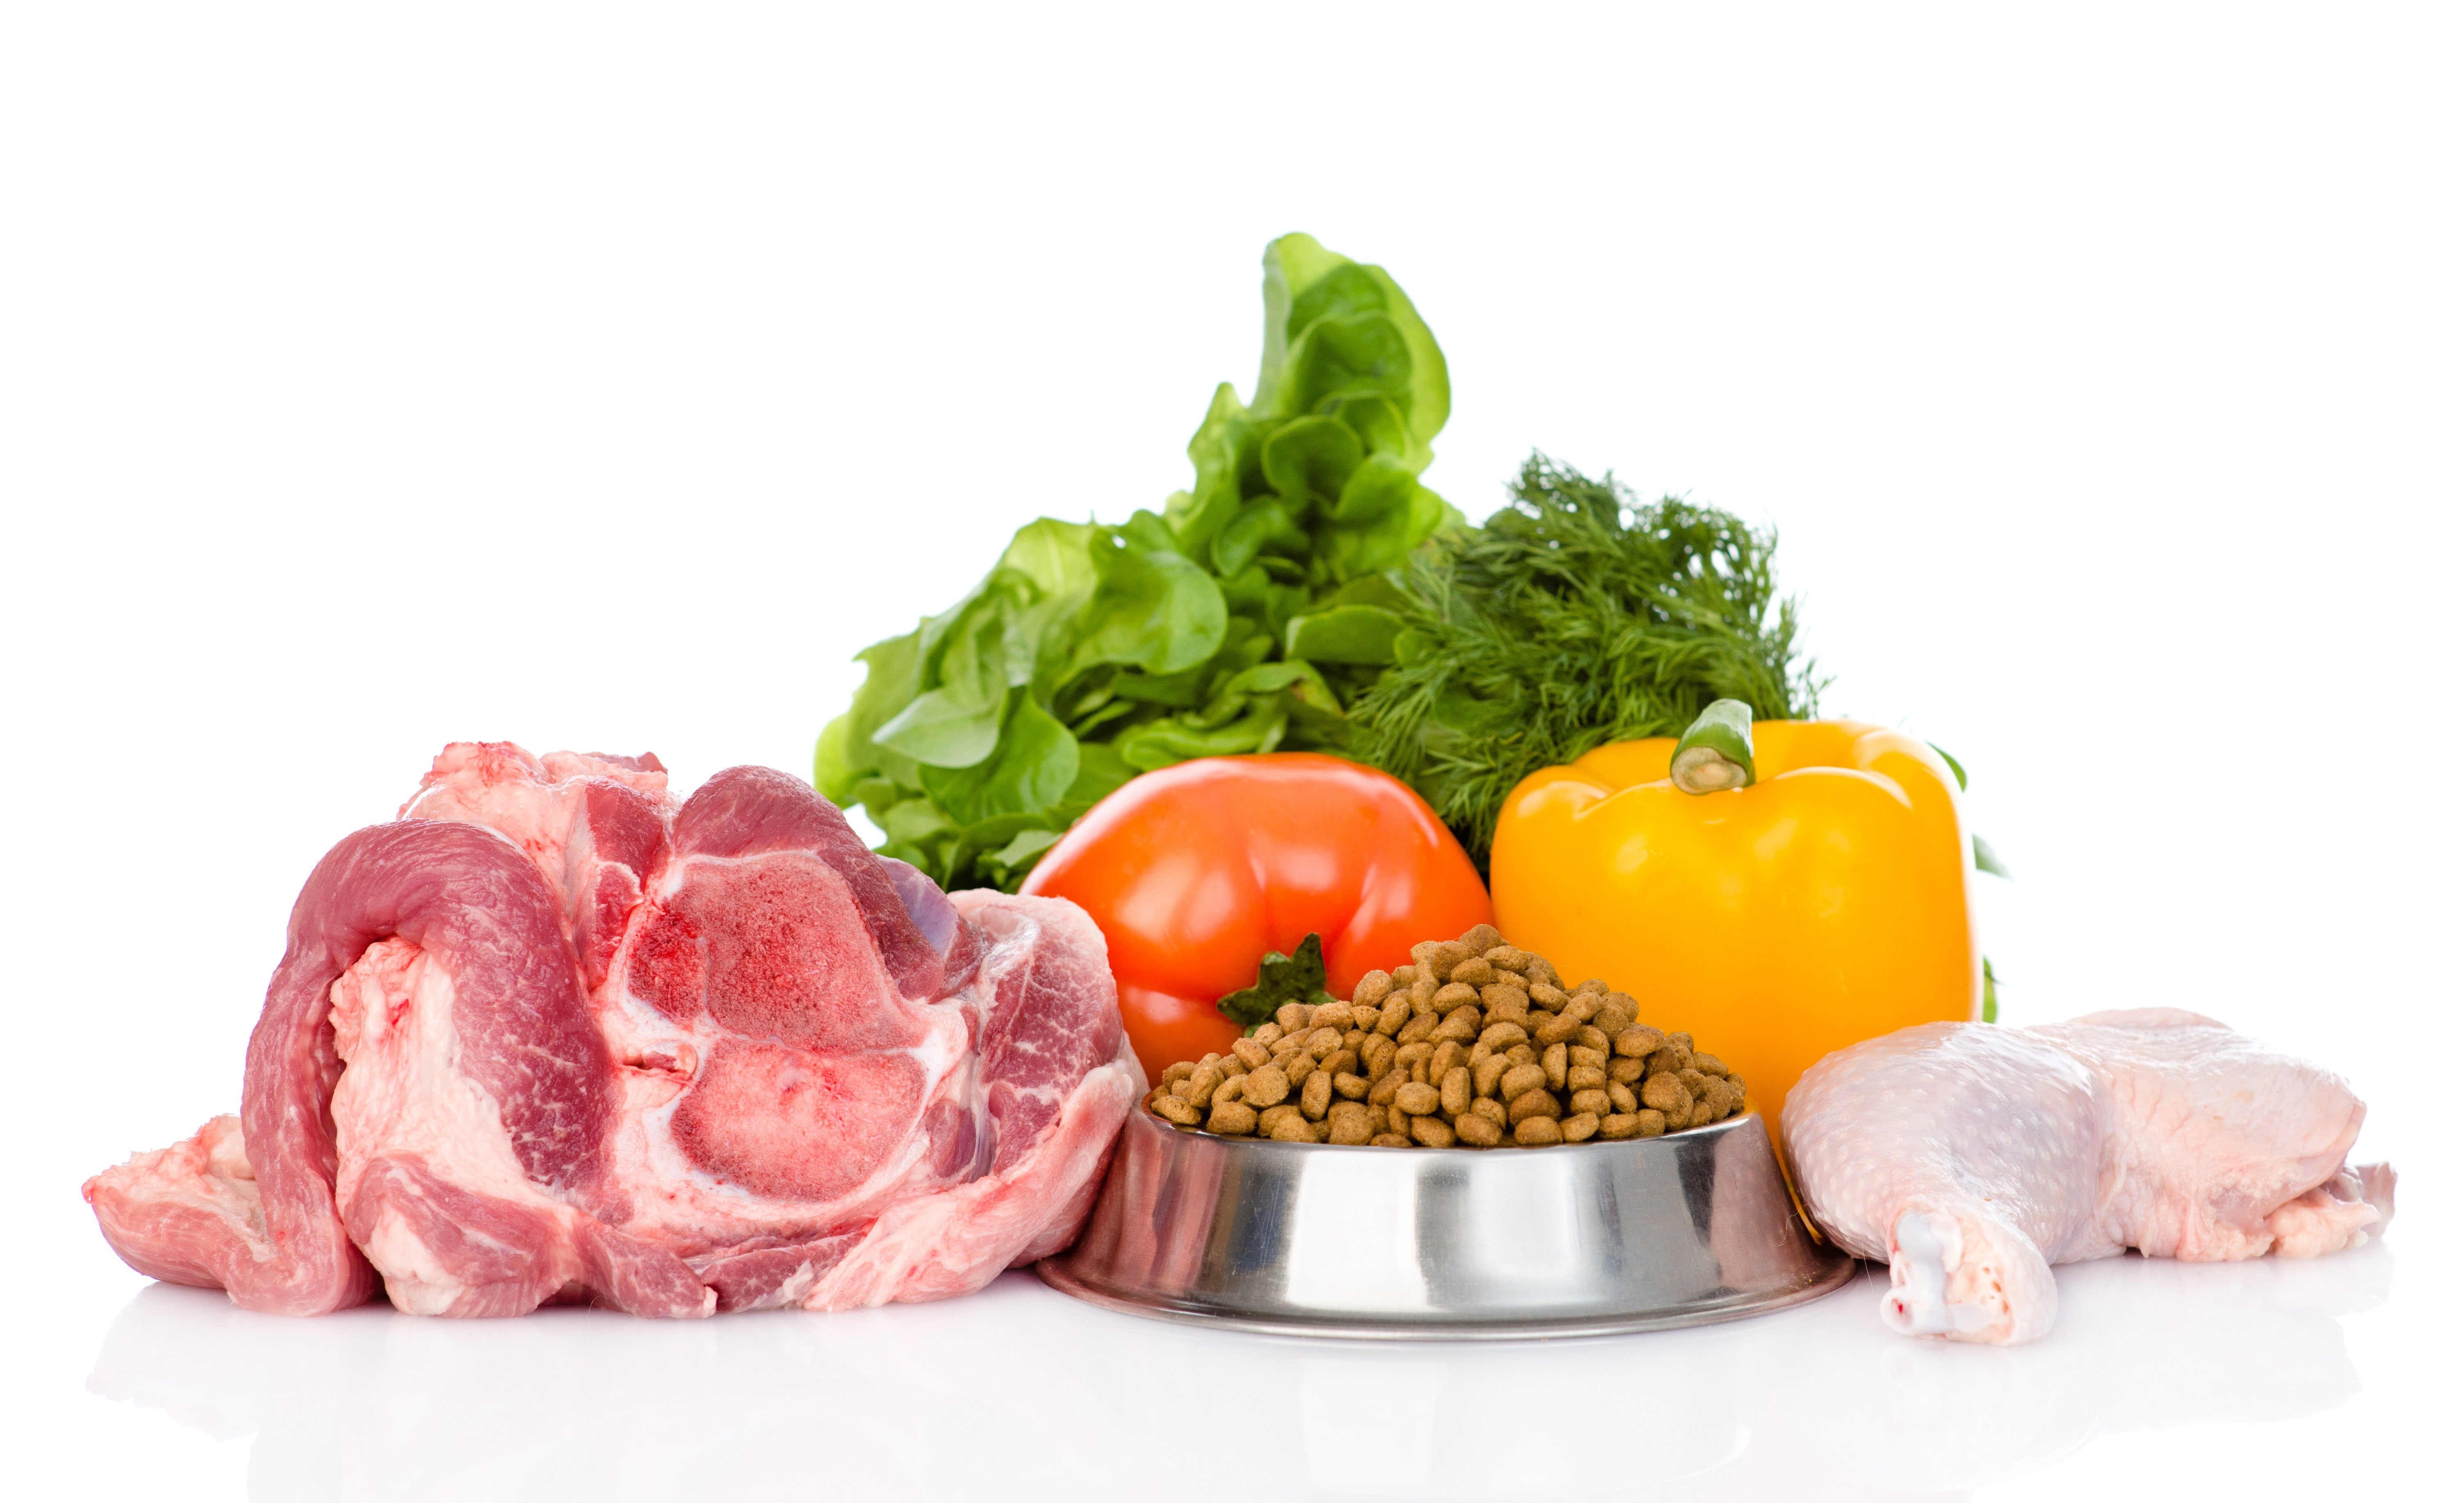 Pet Food and Other Fresh Ingredients